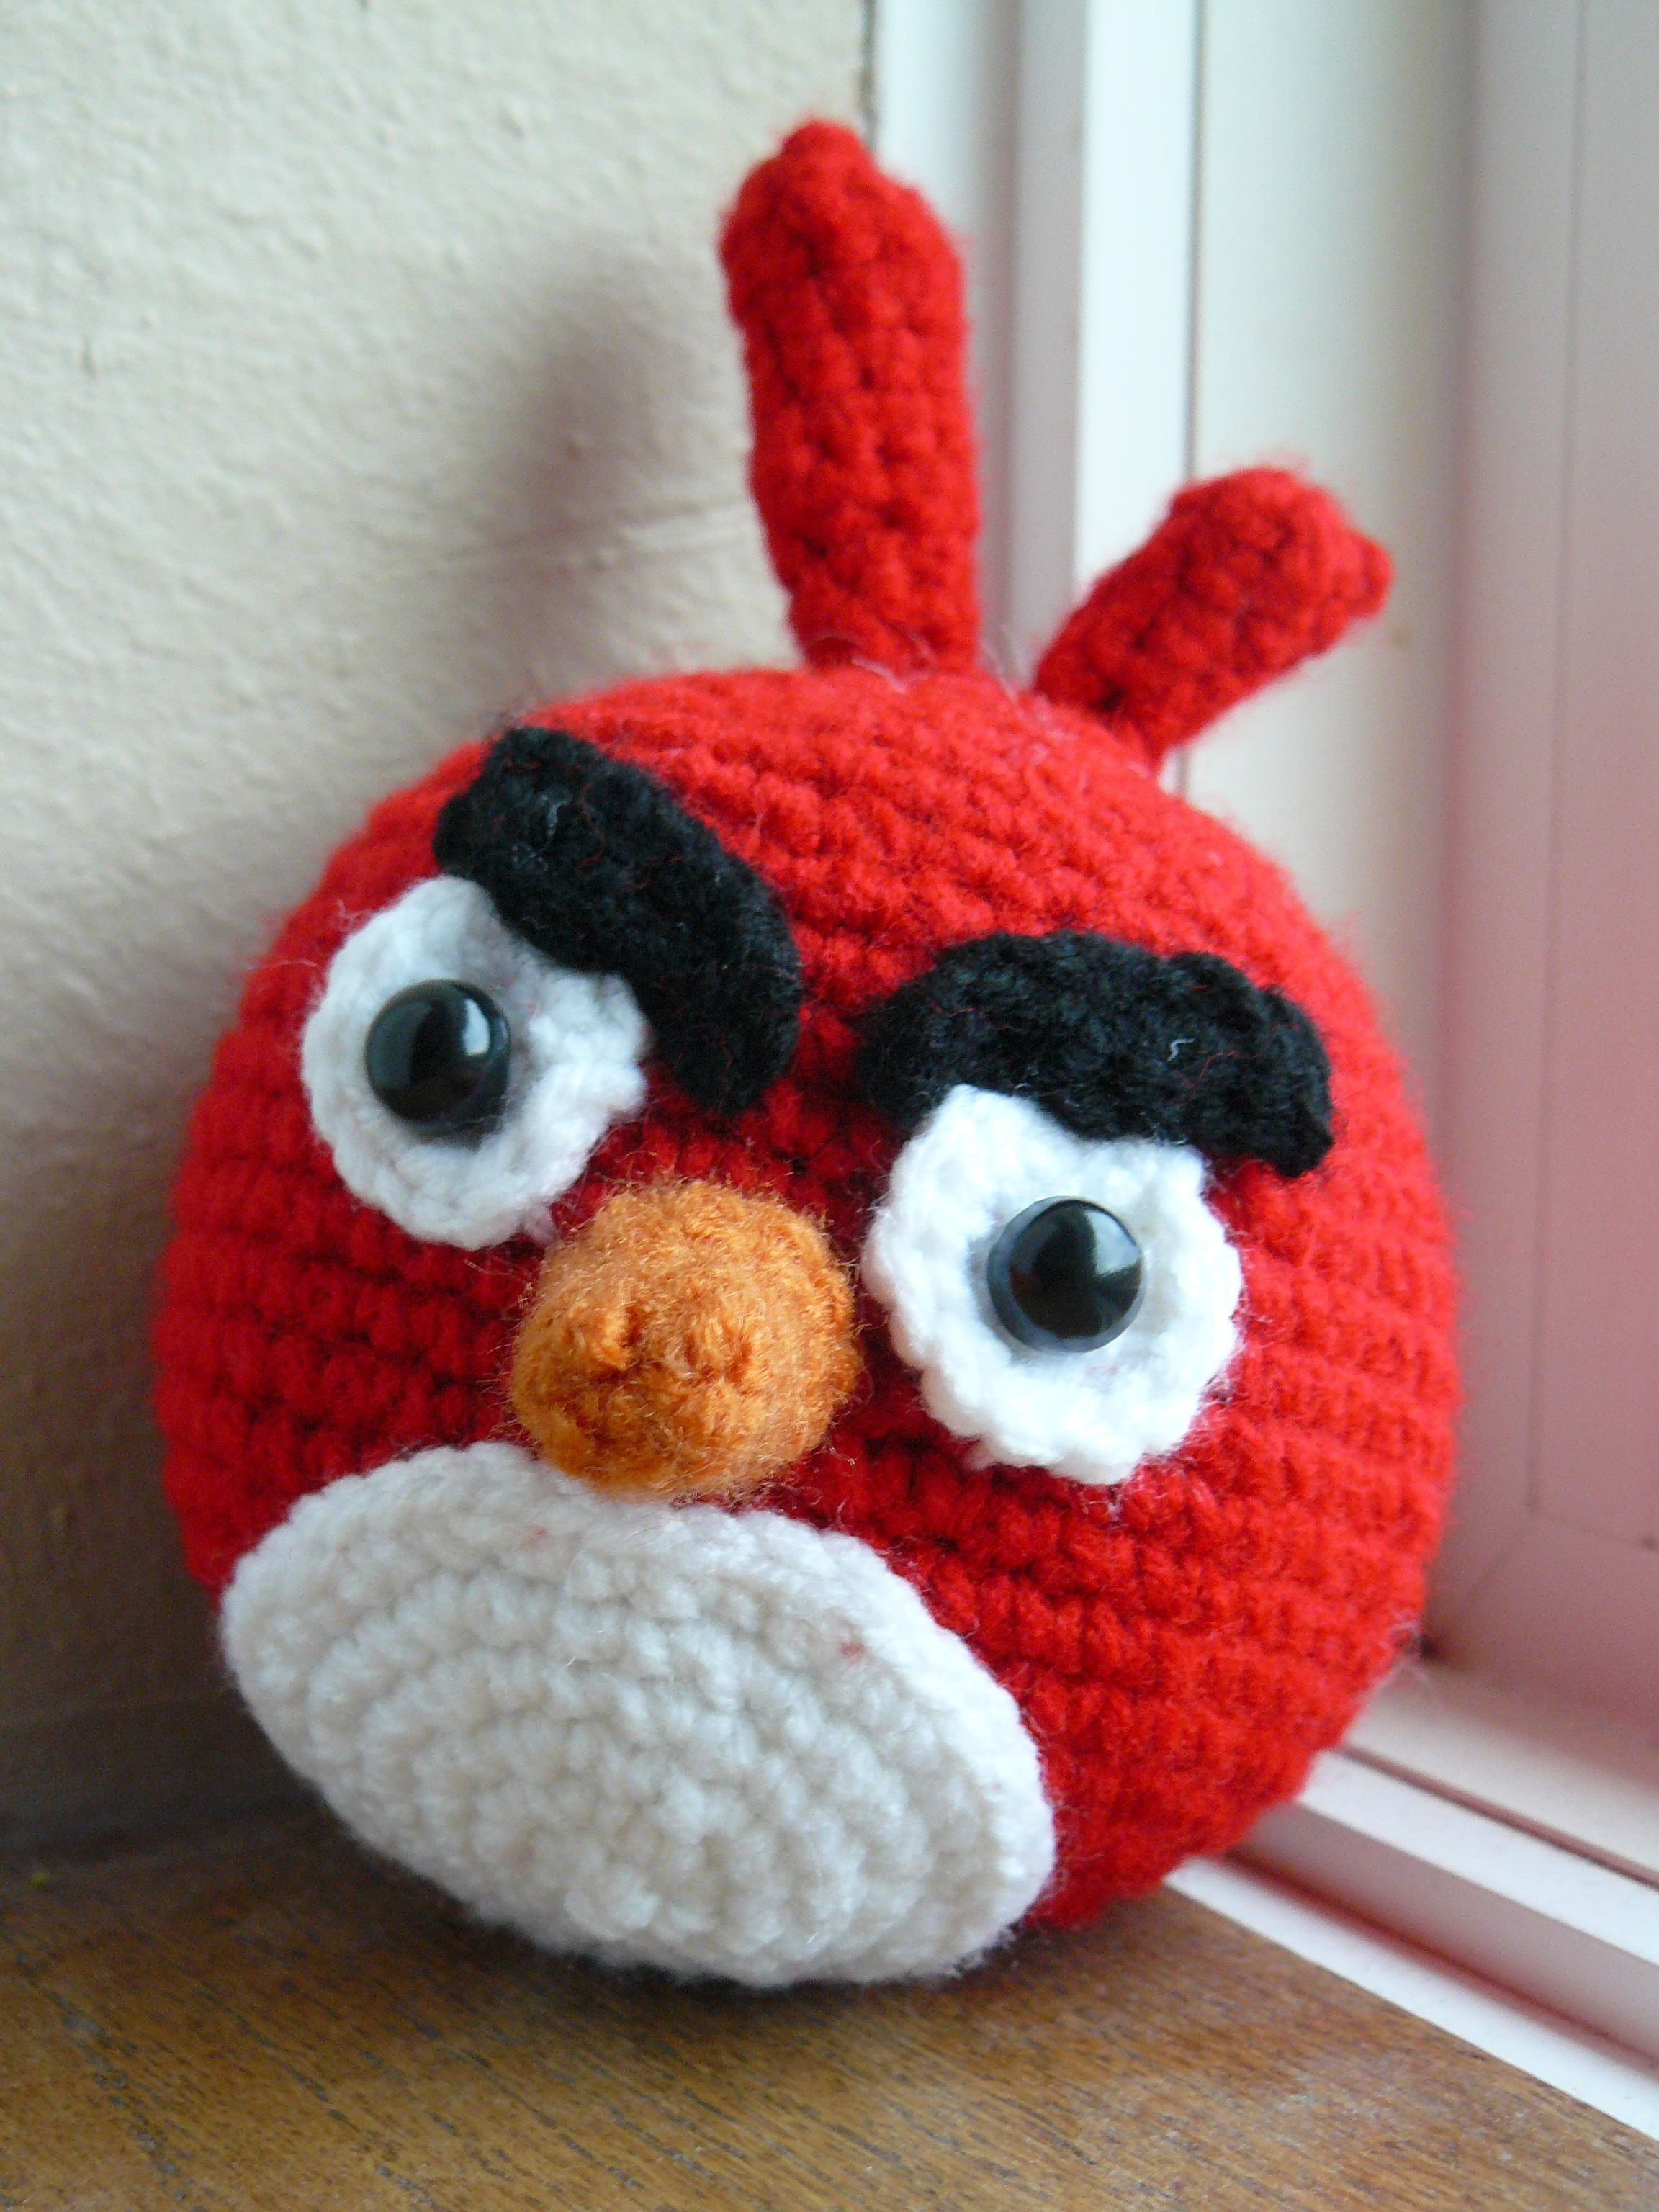 Crocheted red angry bird.